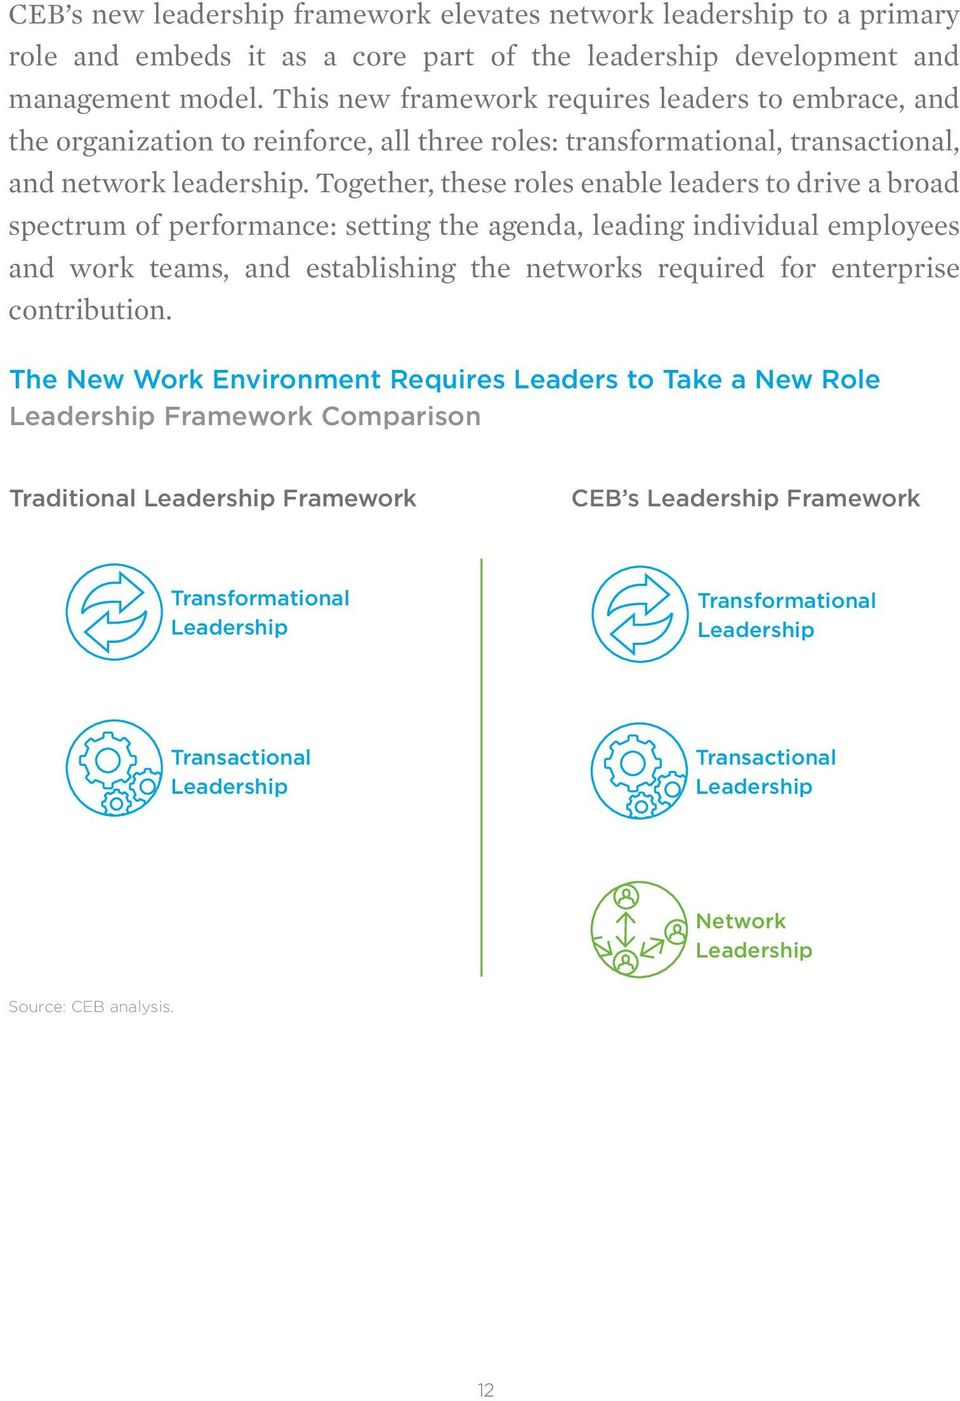 Together, these roles enable leaders to drive a broad spectrum of performance: setting the agenda, leading individual employees and work teams, and establishing the networks required for enterprise